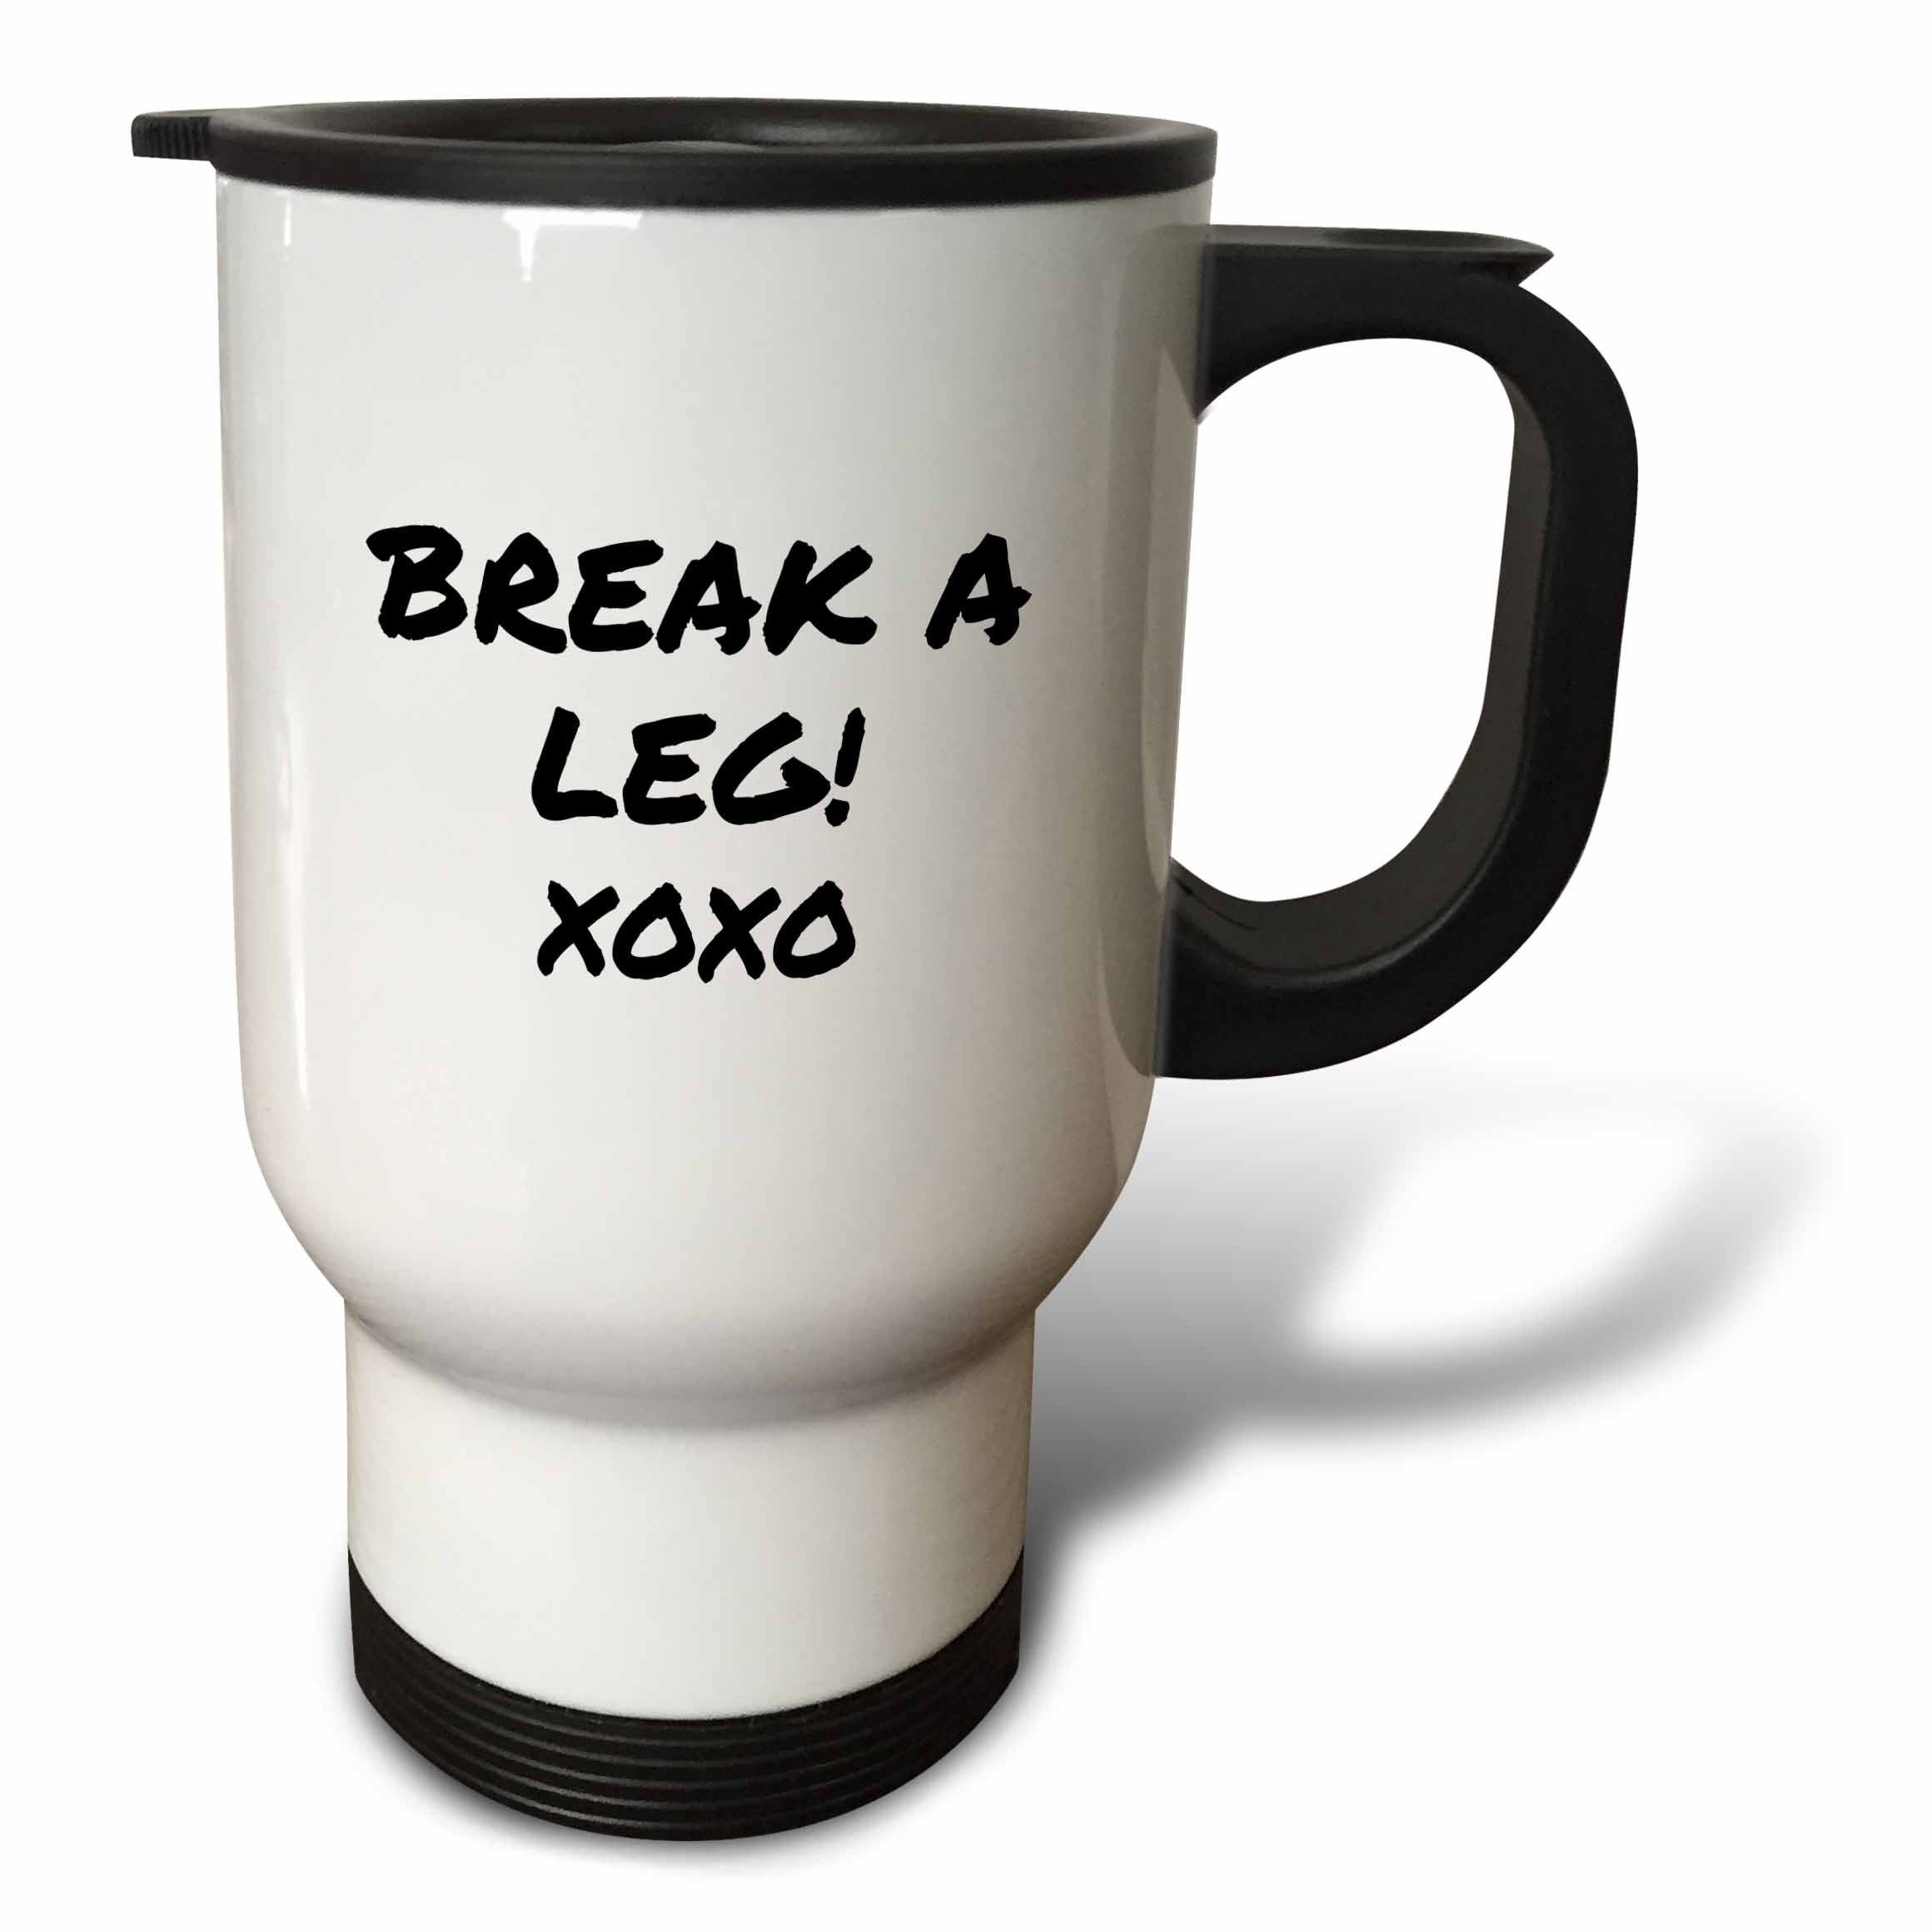 3dRose tm_195571_1 Break a Leg Xoxo Theater, Actor, Show Business Good Luck Message Note Travel Mug, 14-Ounce, Stainless Steel